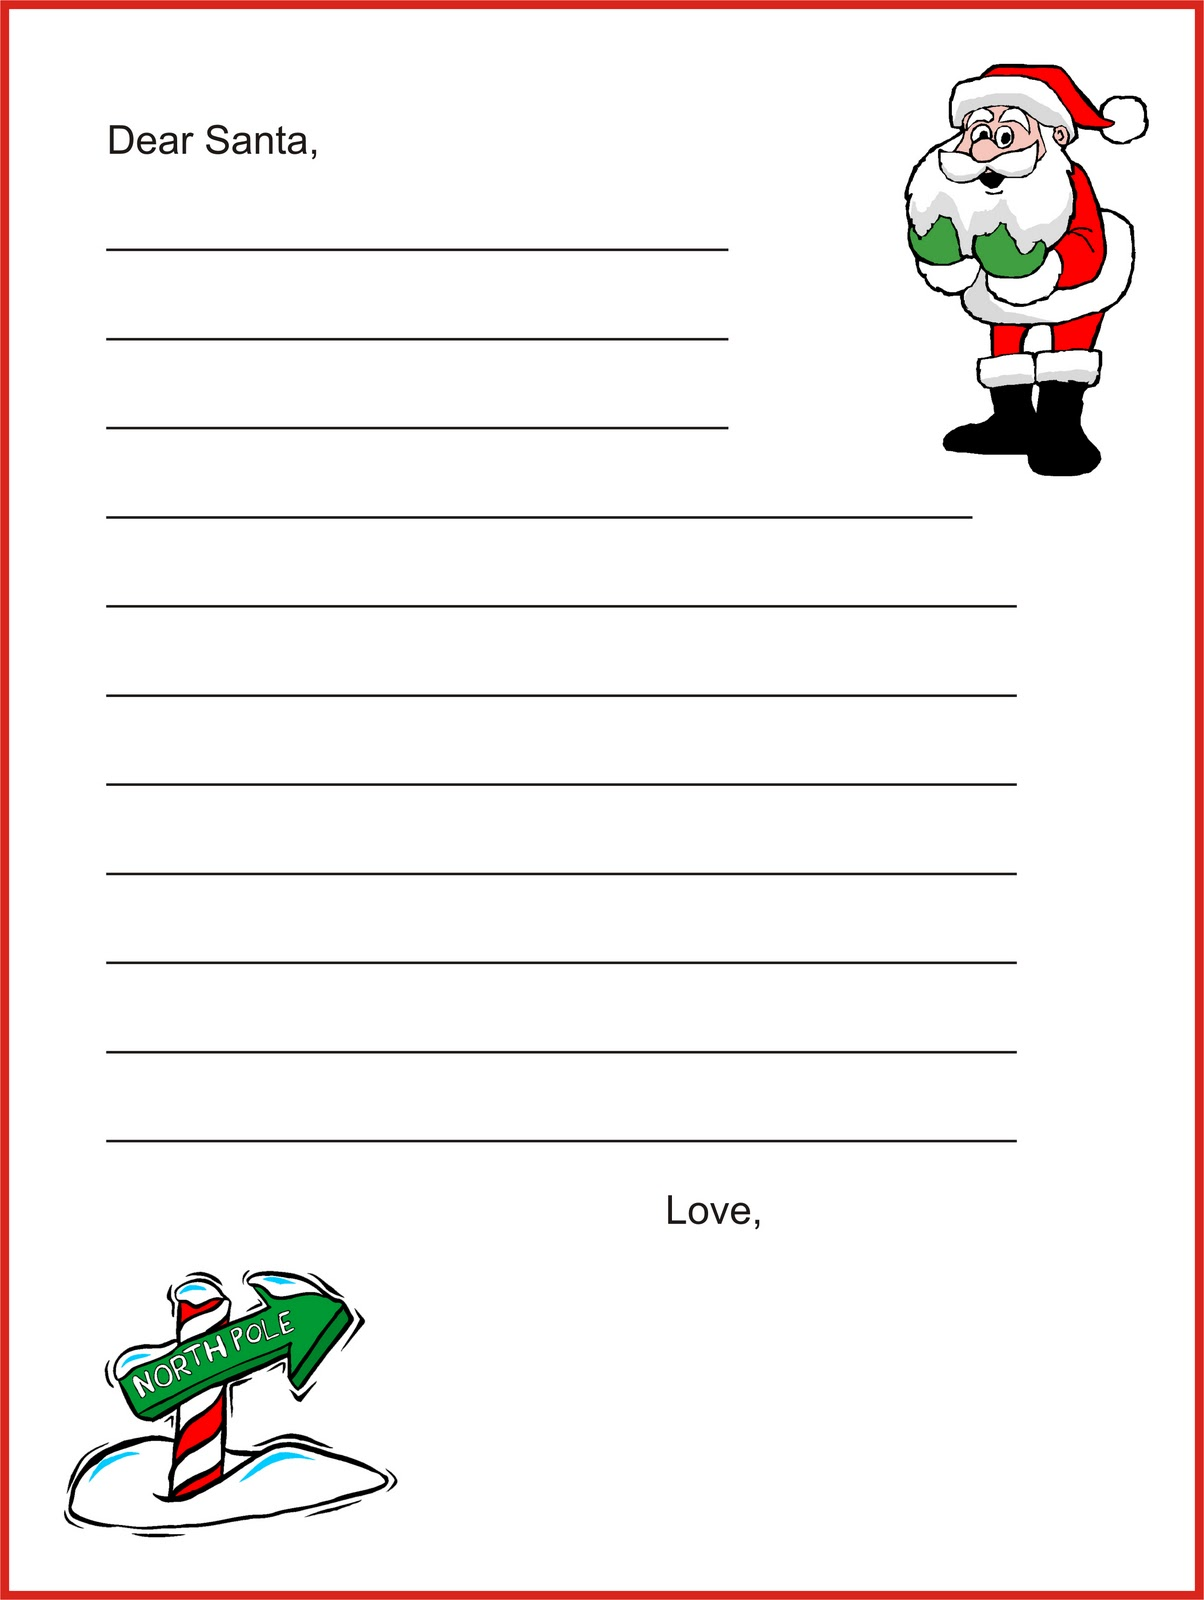 Santa Border For Letters Letters to santa ~ early